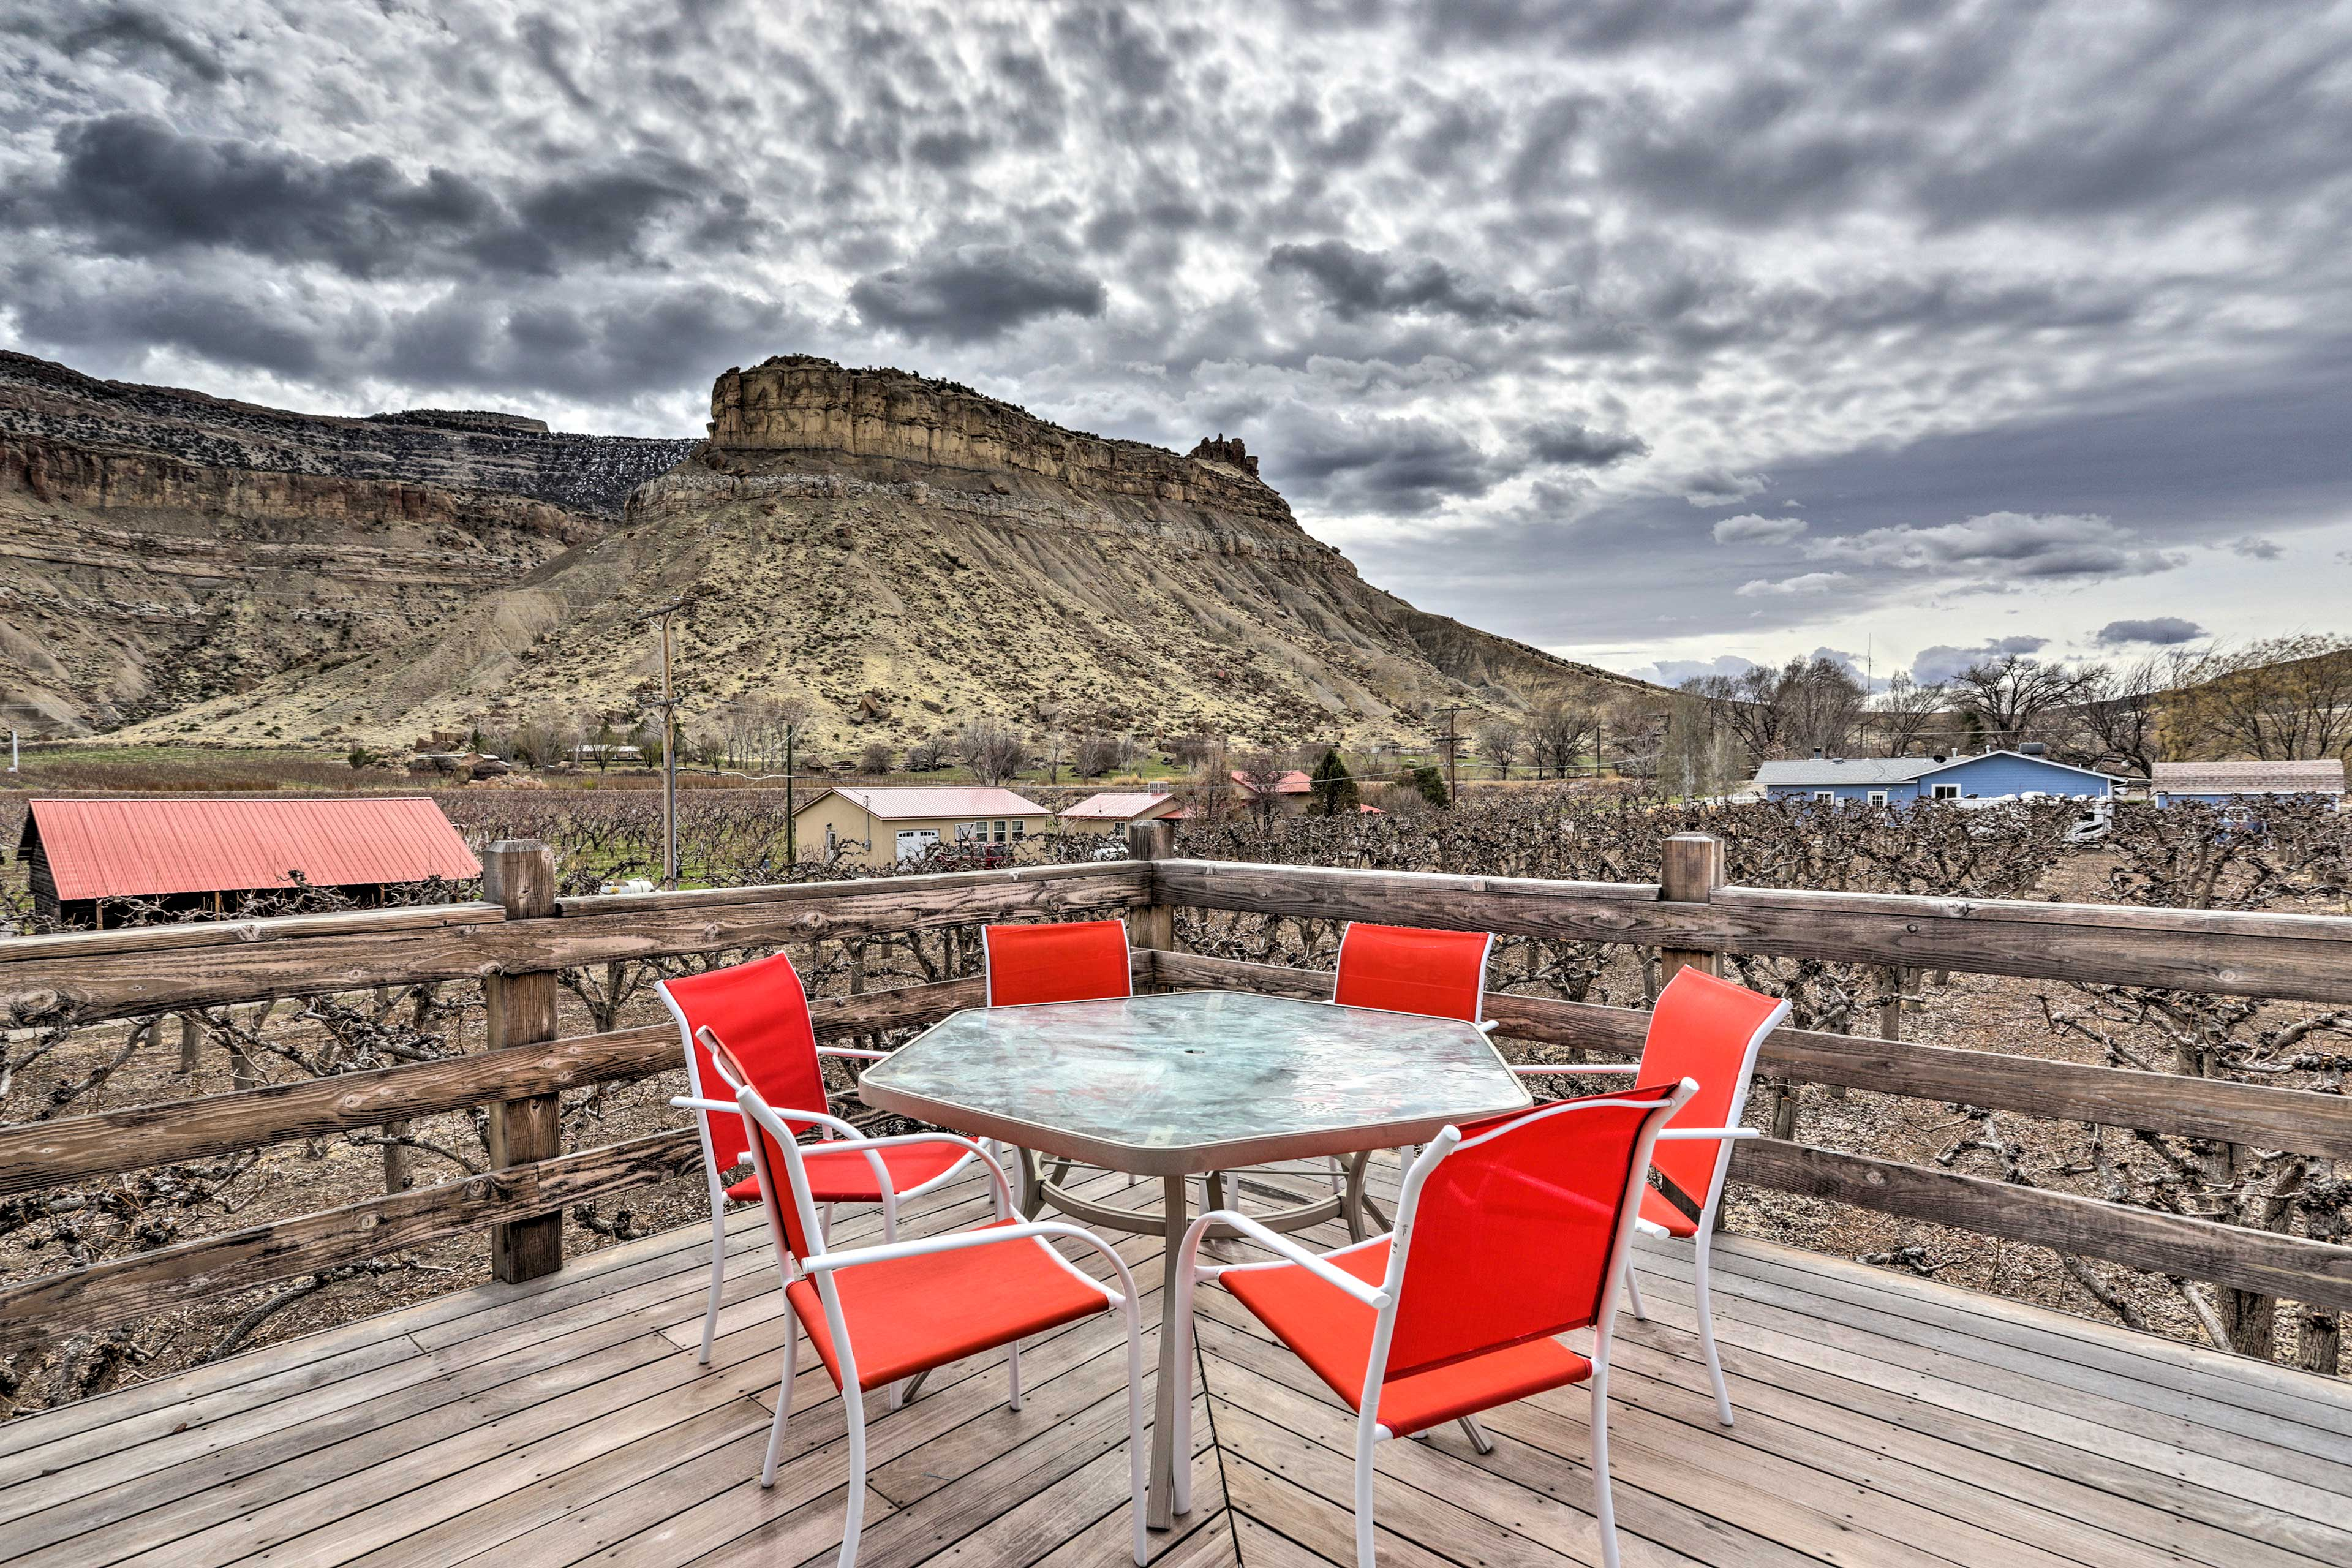 Sip a glass of vino and relax on the deck of your vacation rental!